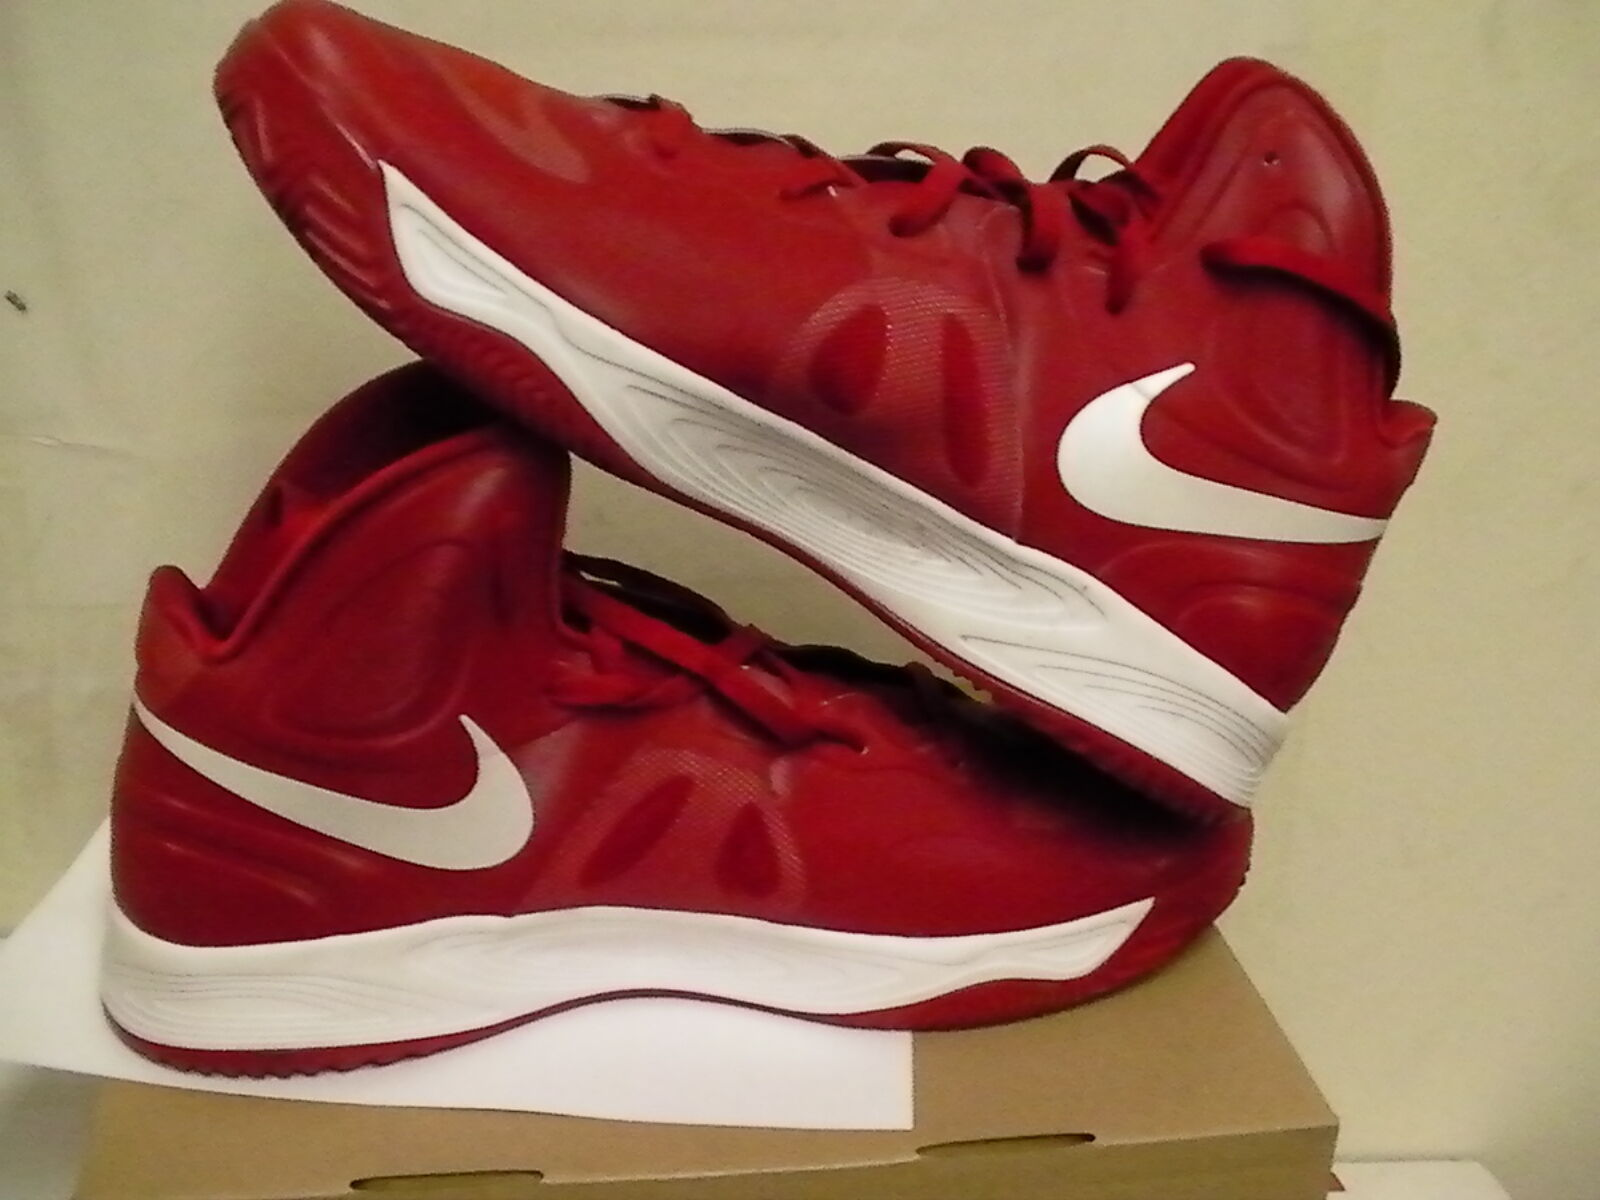 Nike mens shoes hyperfuse light basketball size 17 us new